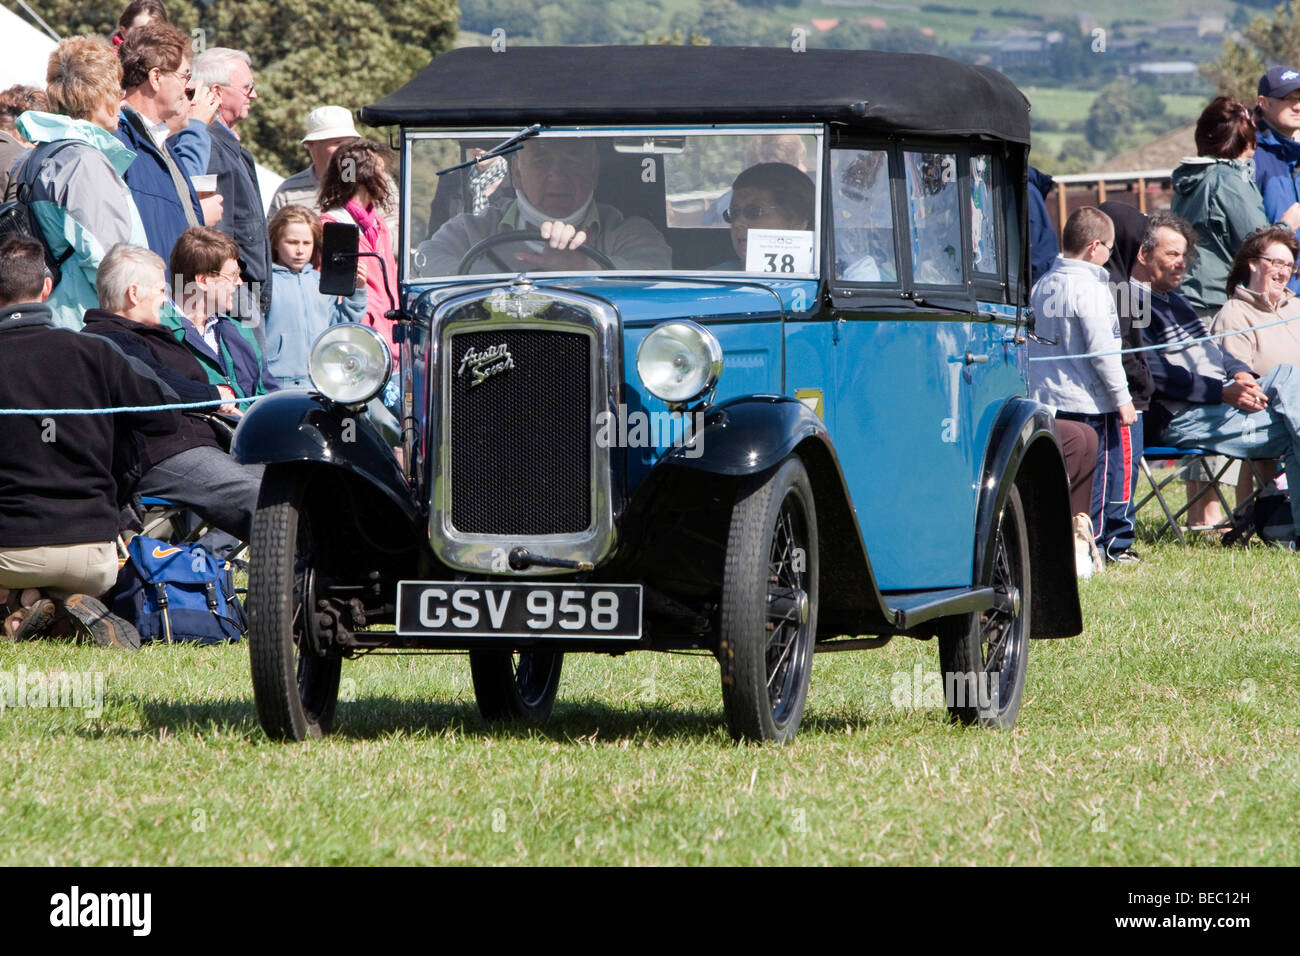 Vintage car display at Wensleydale Agrcultural Show held early September near Leyburn, North Yorkshire - Stock Image